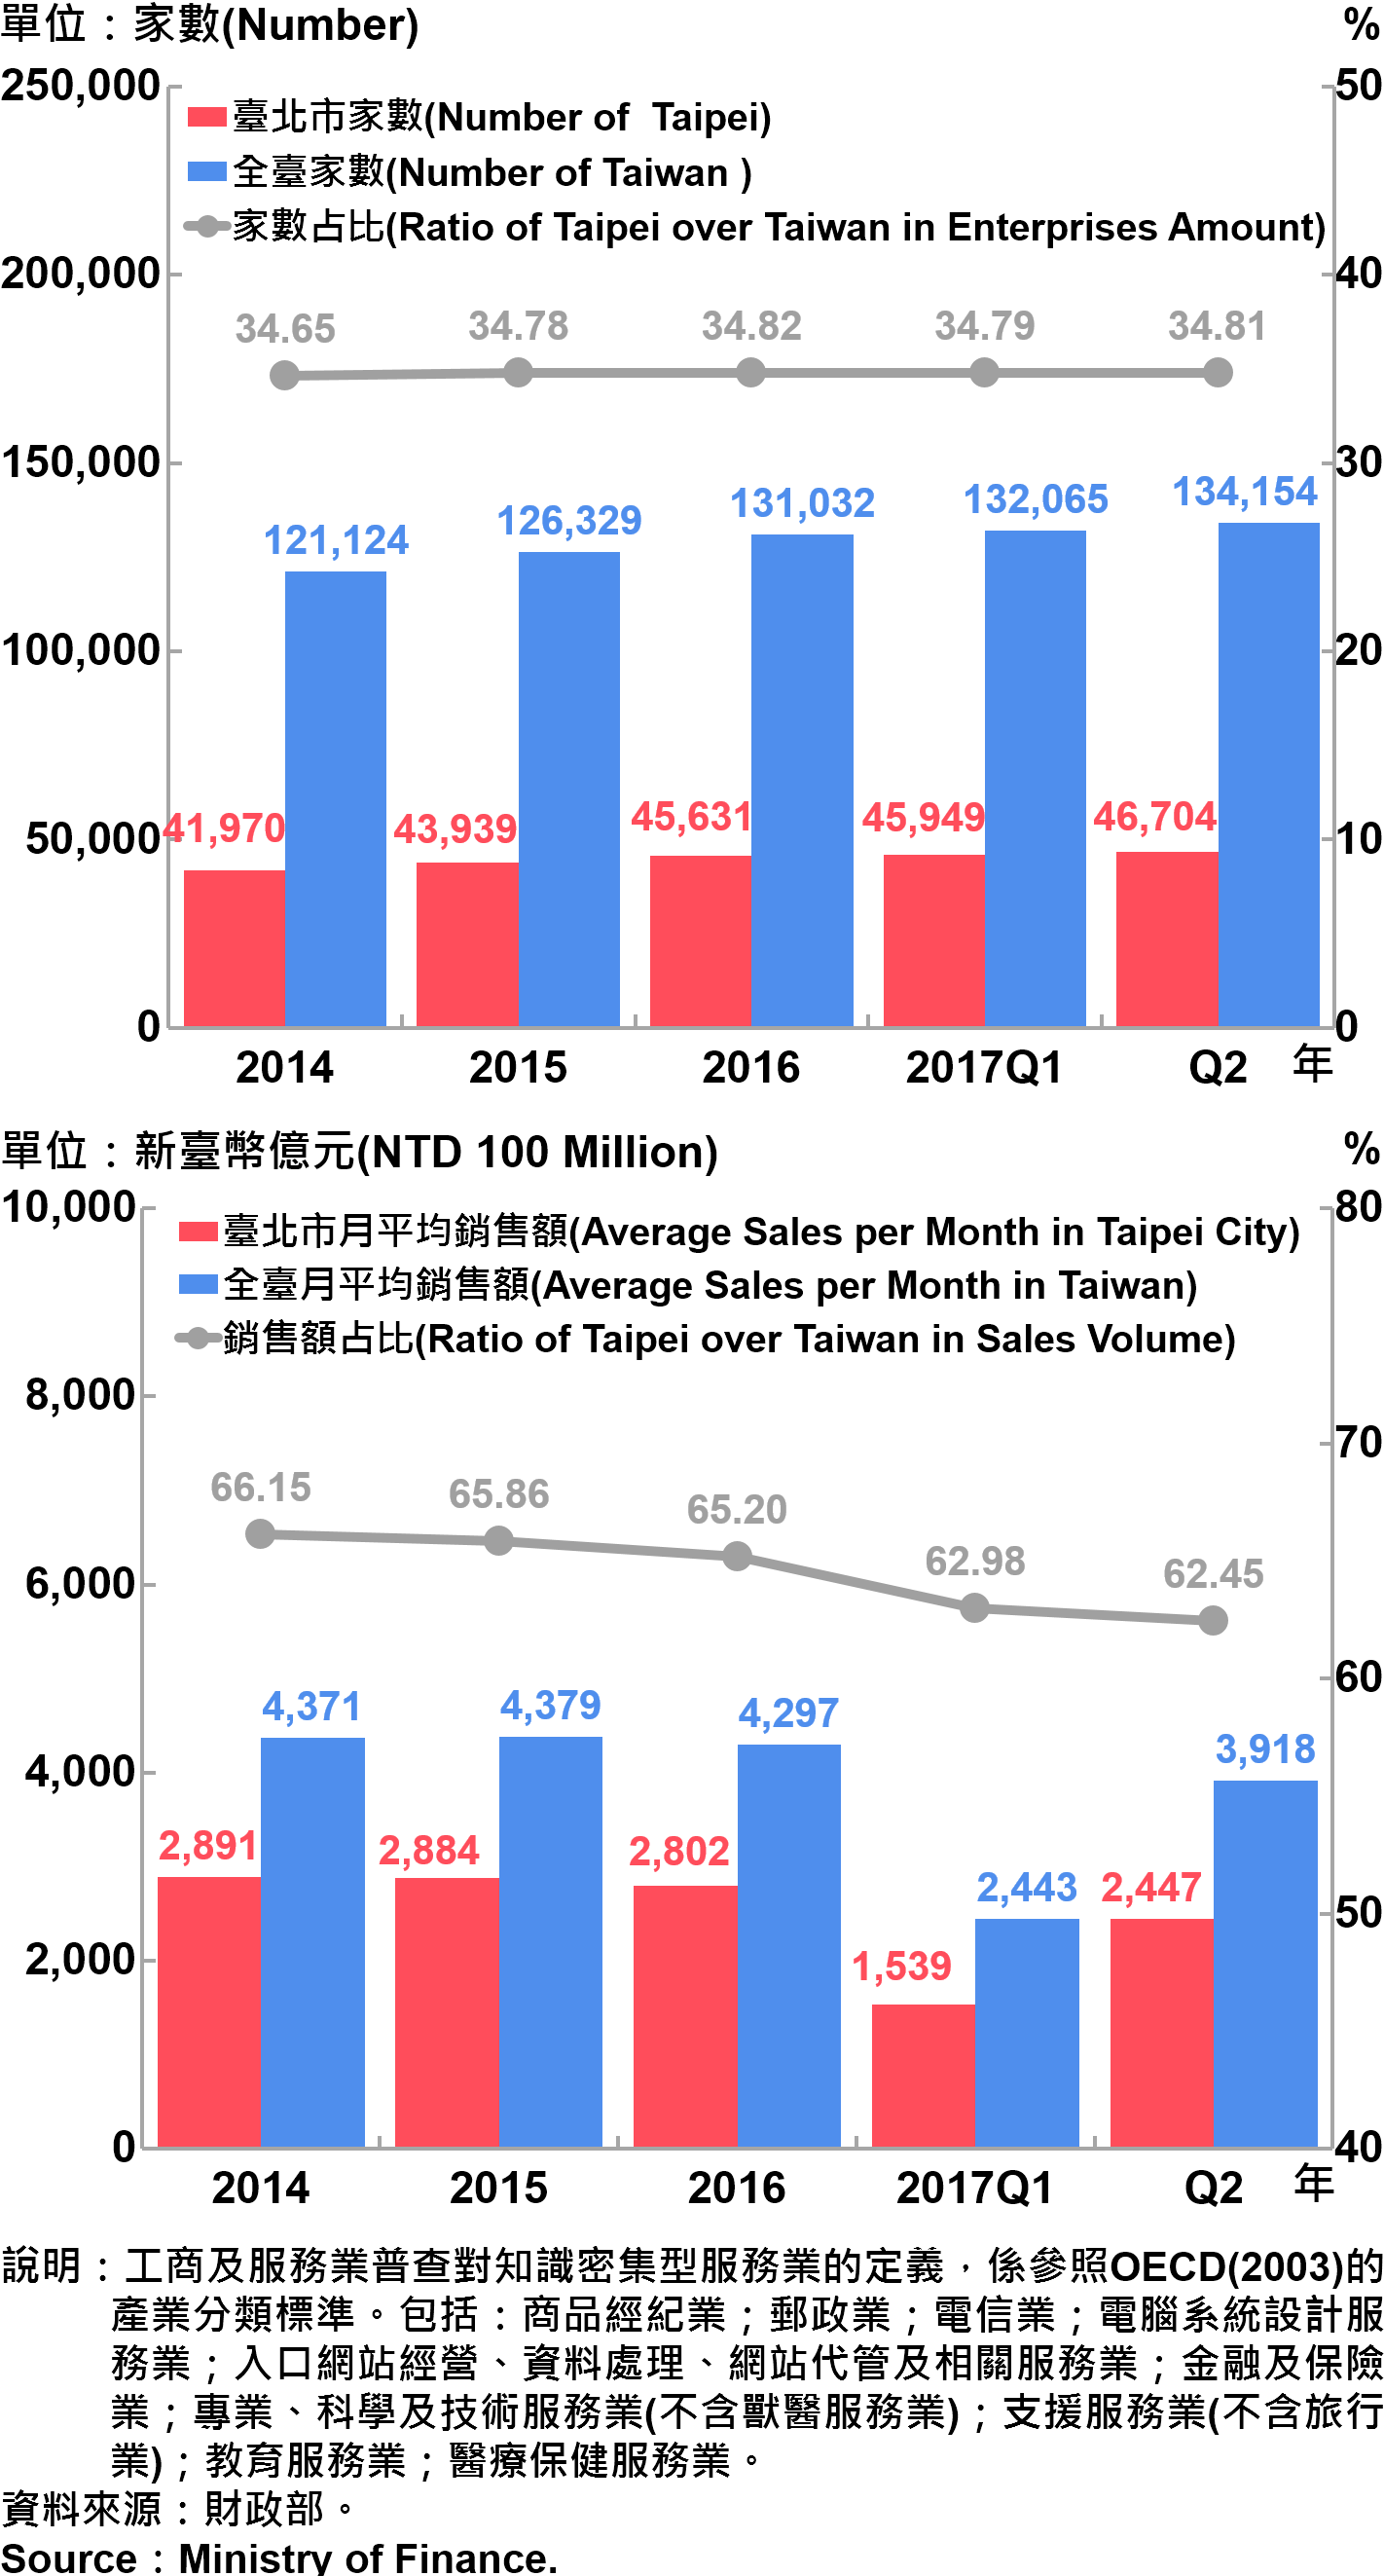 圖17、臺北市知識密集型服務業之家數及銷售額—2017Q2 Statistics Knowledge Intensive Service Industry in Taipei City—2017Q2